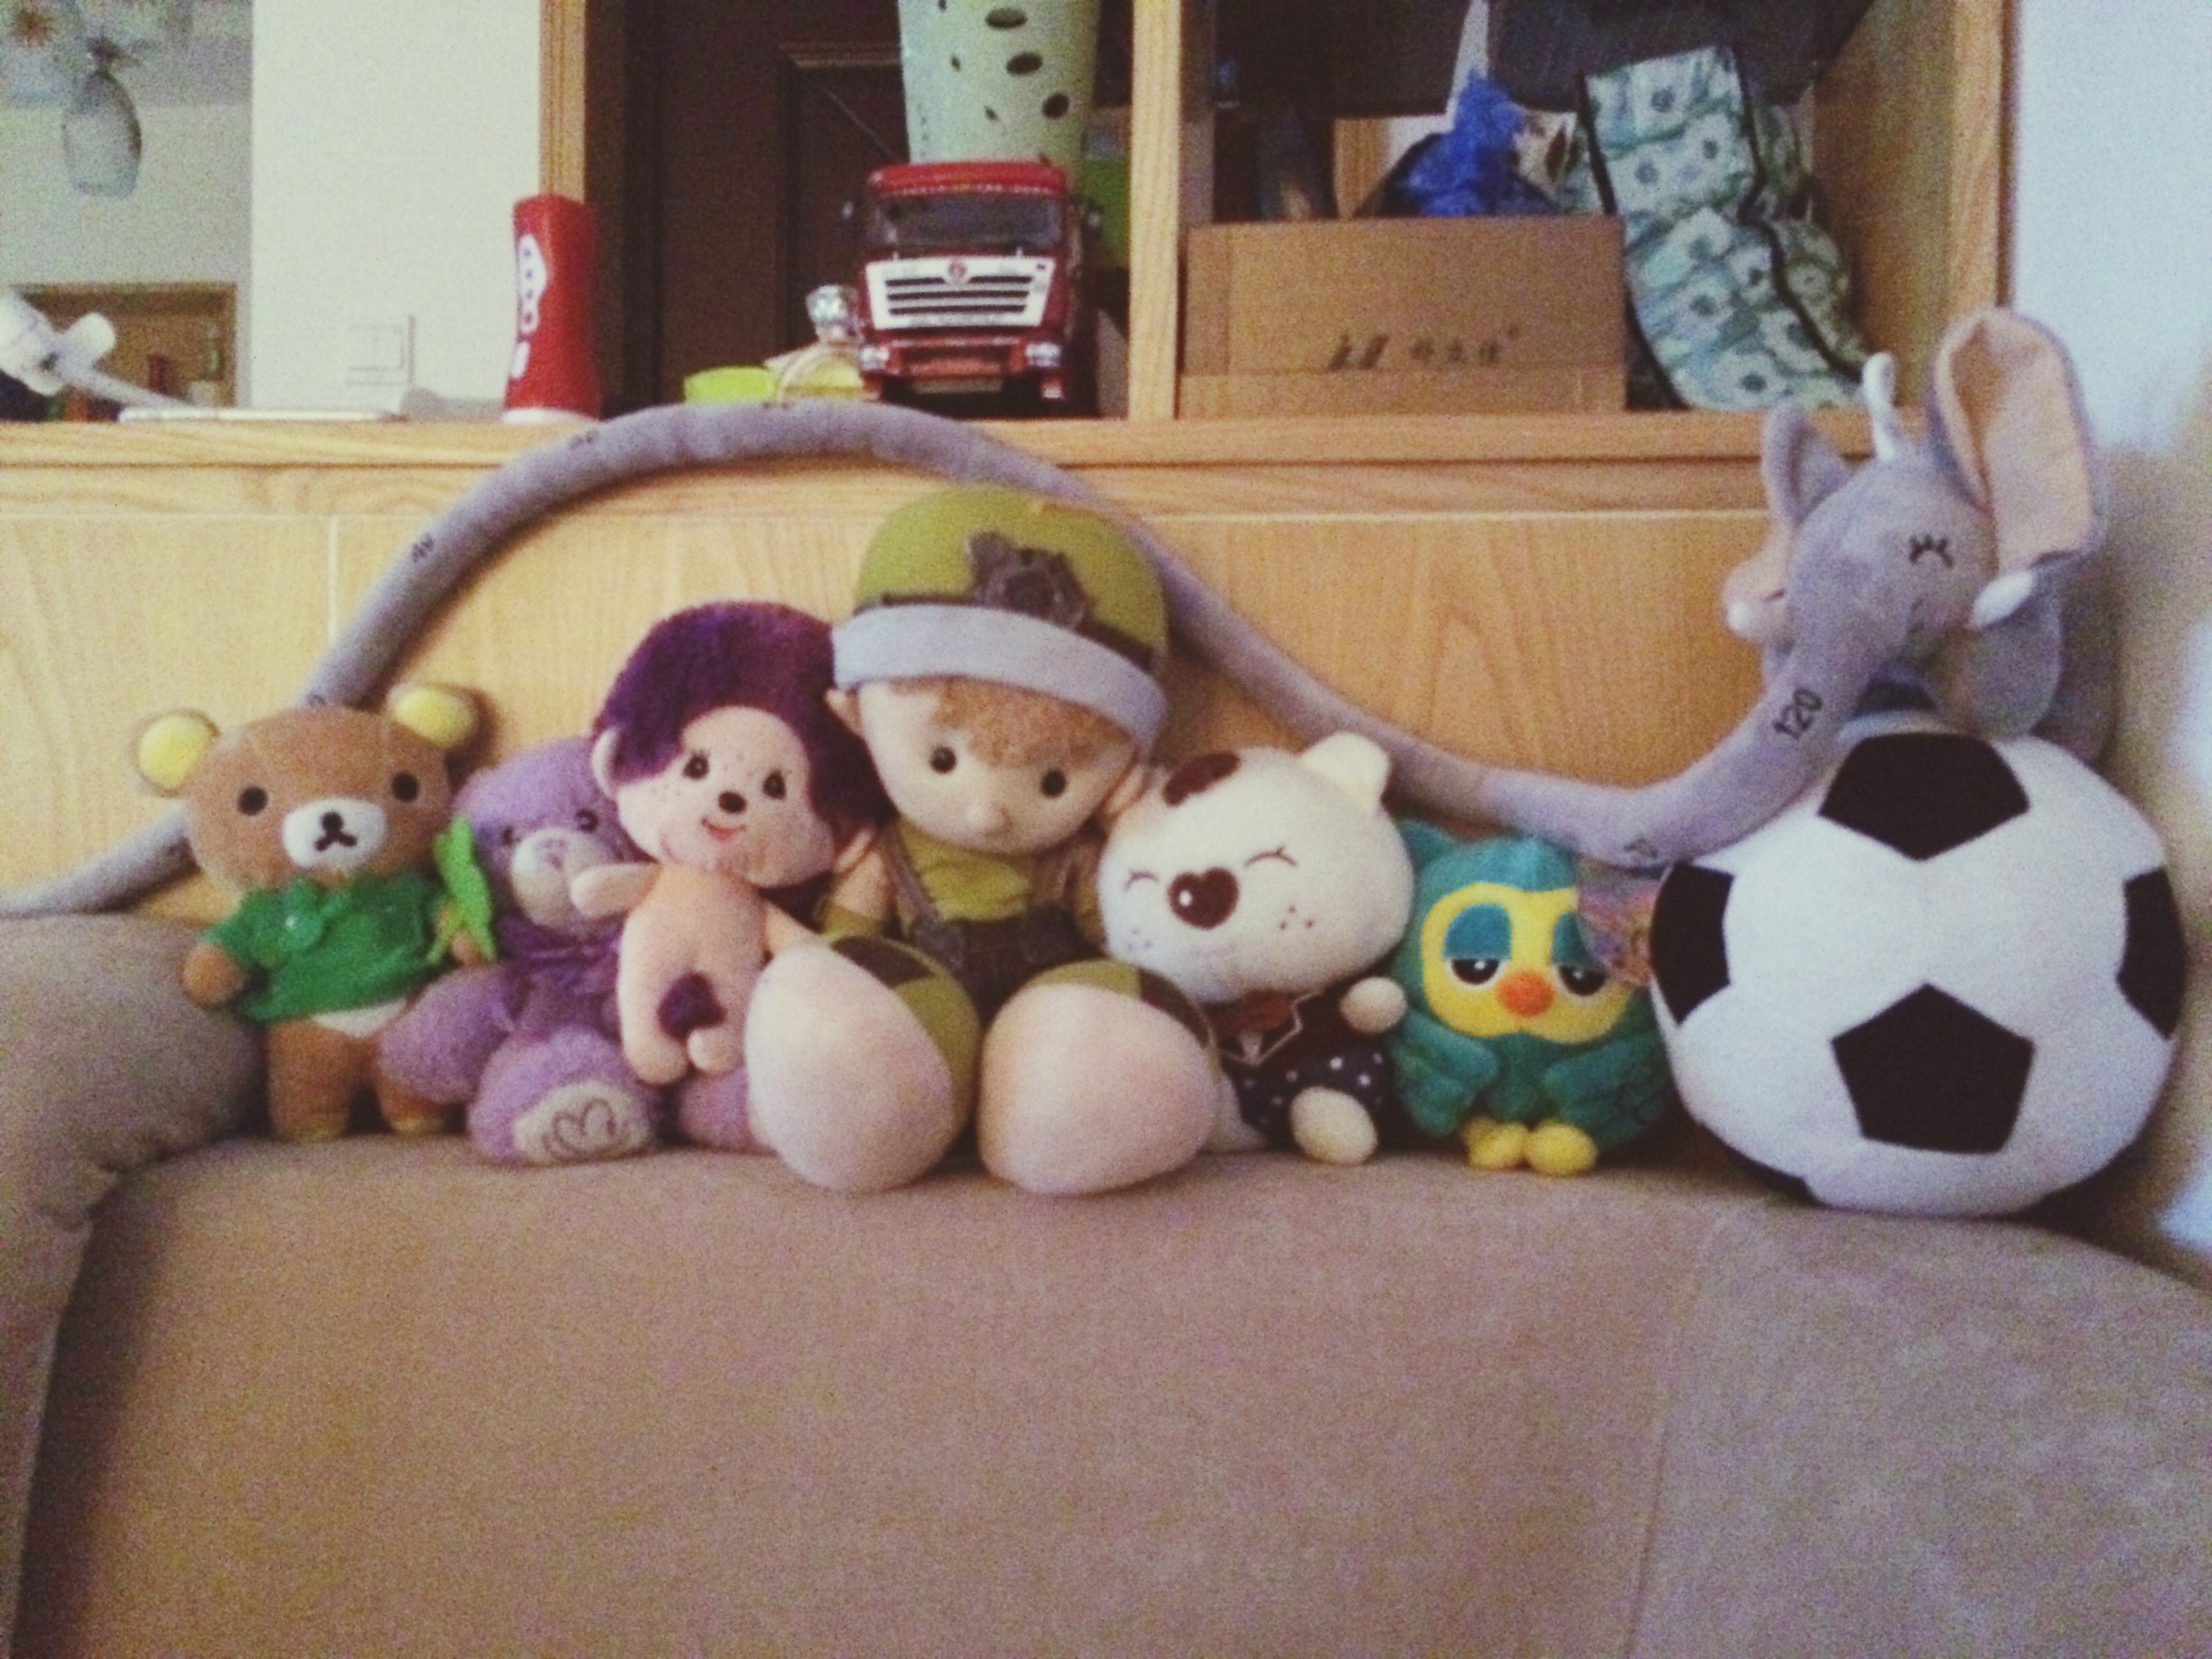 toy, domestic animals, animal representation, multi colored, indoors, childhood, stuffed toy, art and craft, pets, animal themes, art, variation, human representation, creativity, dog, two animals, ball, one person, teddy bear, street